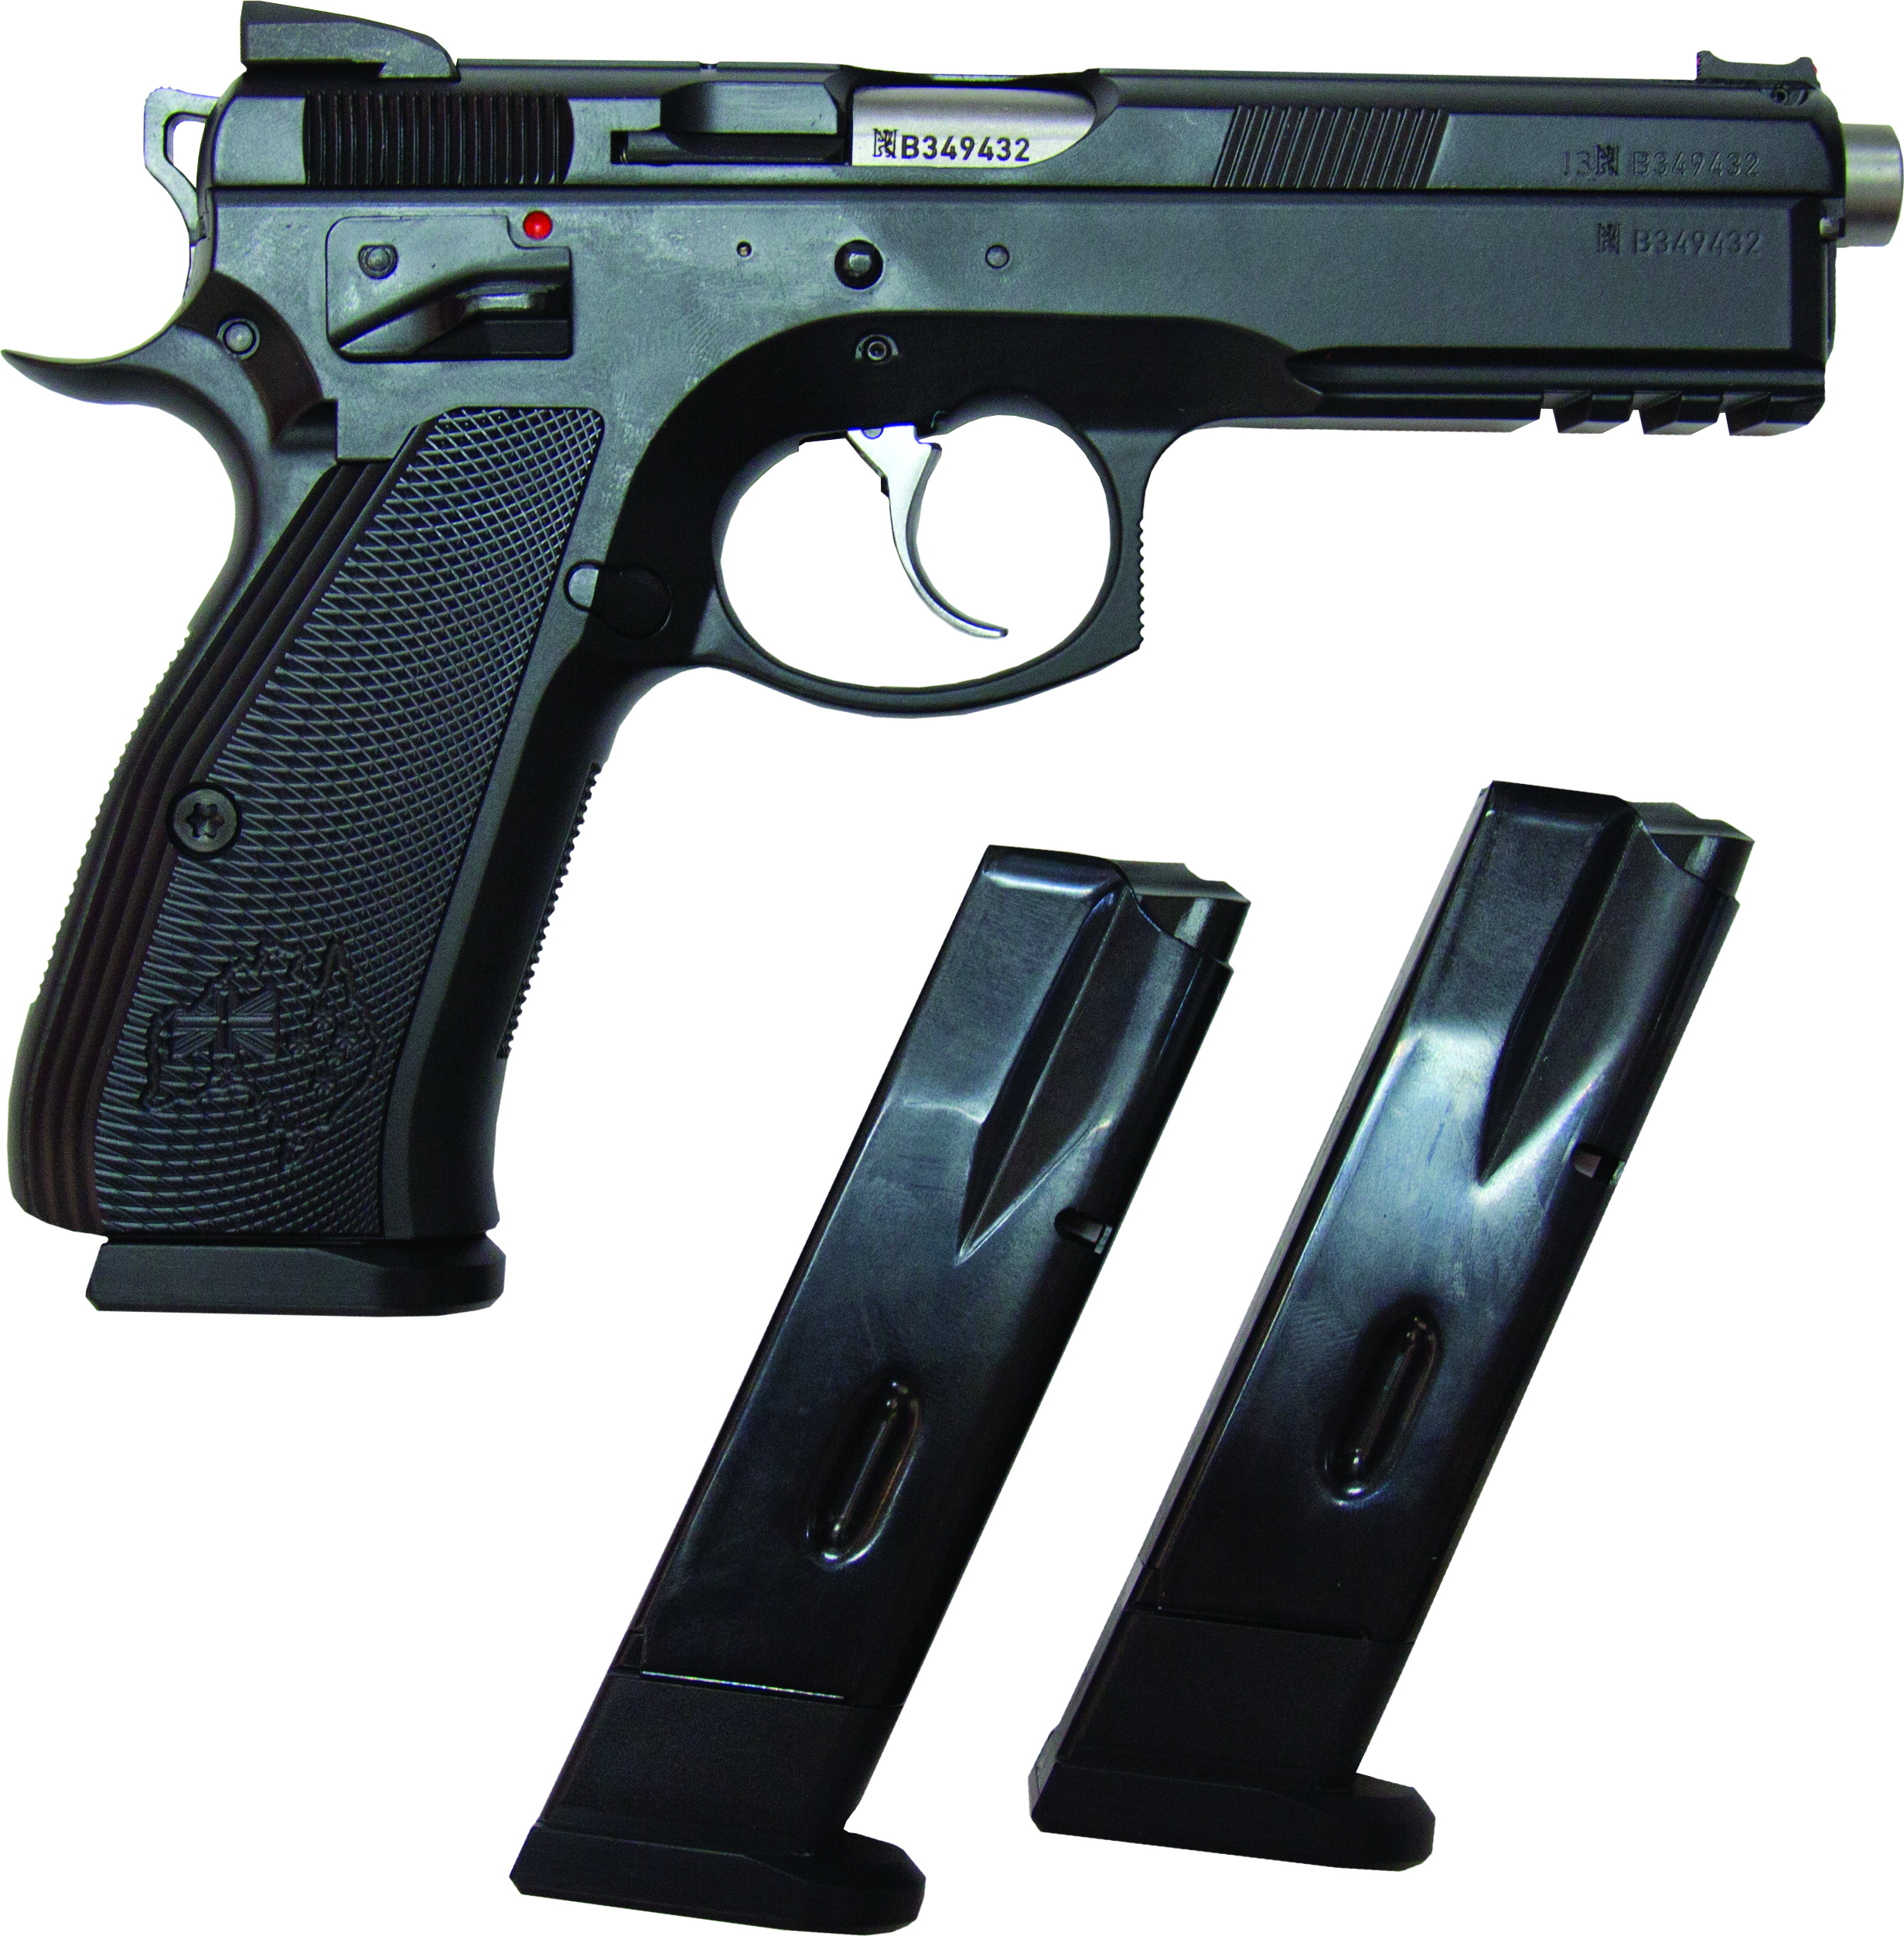 CZ 75 SP-01 SHADOW AUST SPEC 9MM 120MM, 2 S/MAGS 10RND MAG